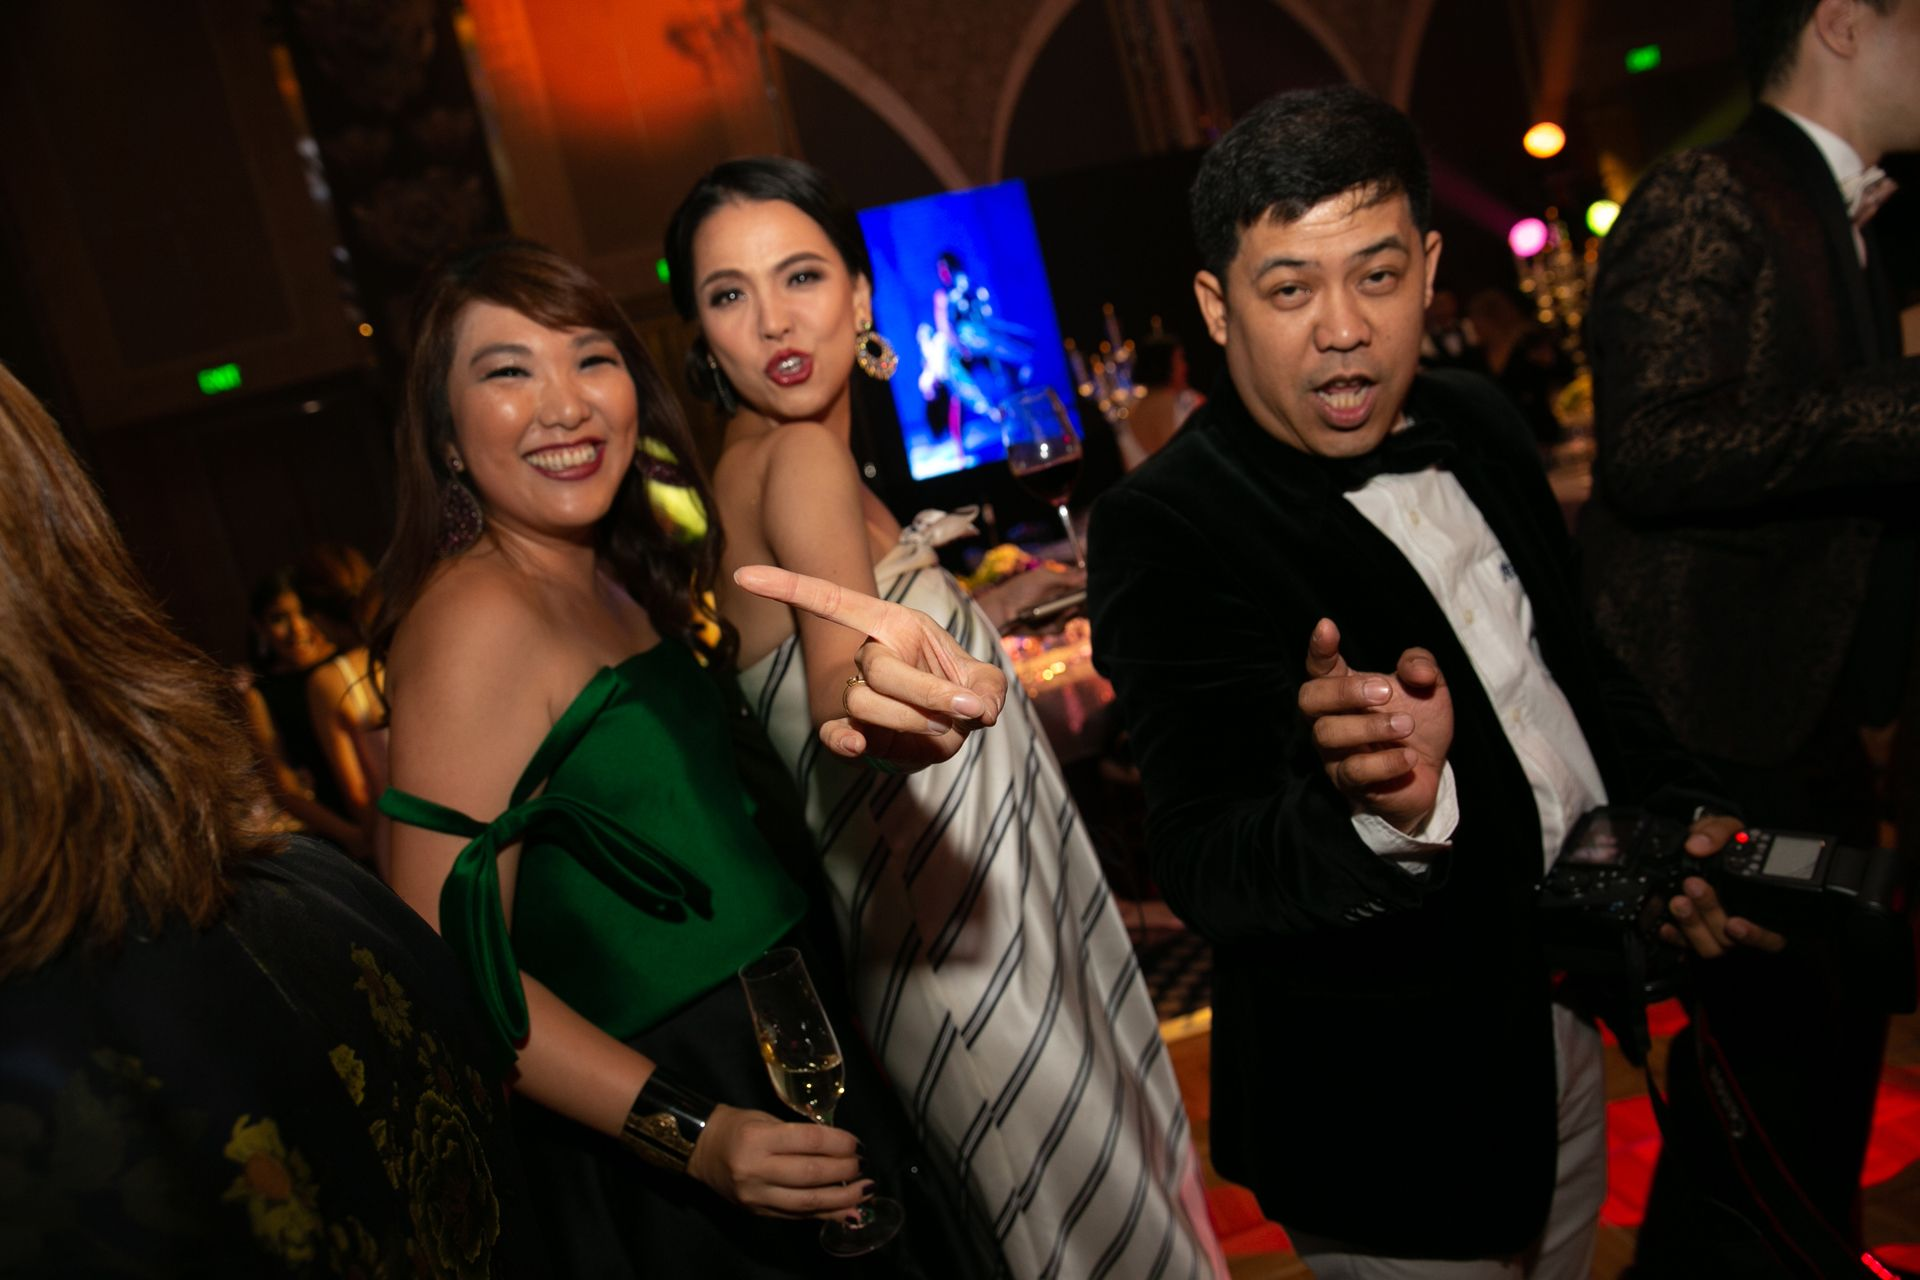 Lesley Anne Tan, Ingrid Chua, and Ron Mabanag